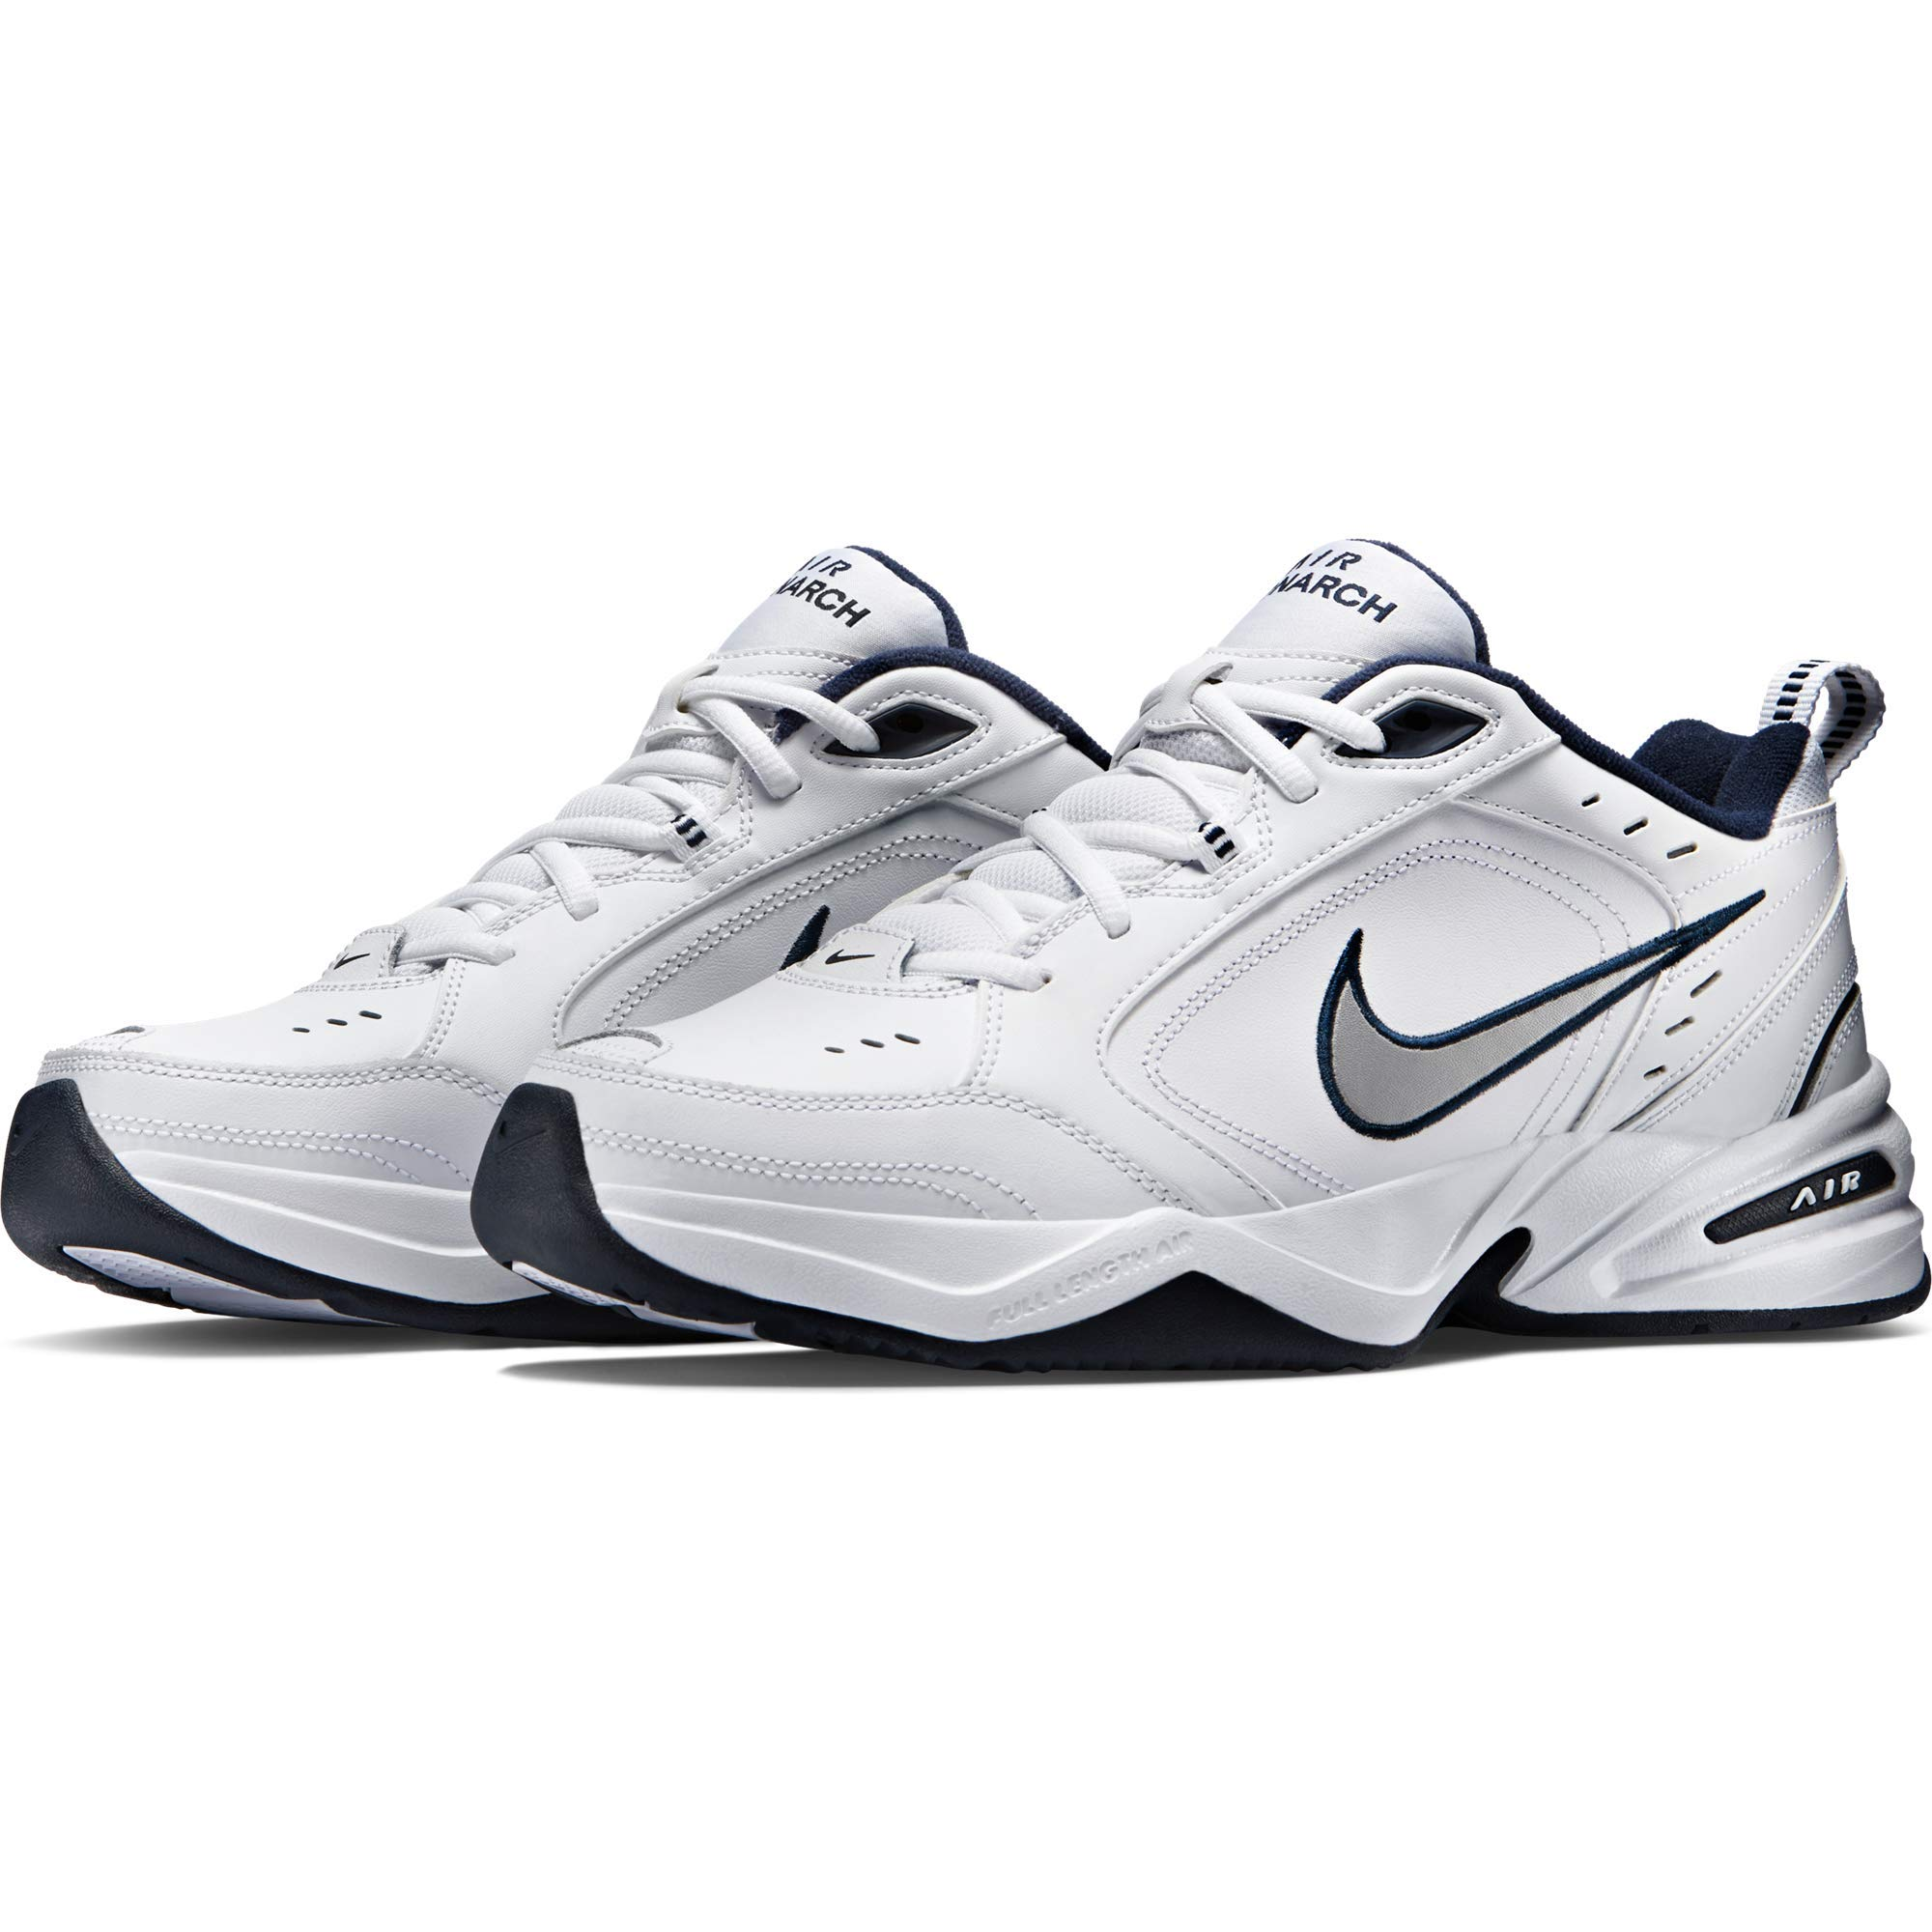 Nike Men's Air Monarch IV Running Shoe Metallic Silver/Mid Navy (8) by Nike